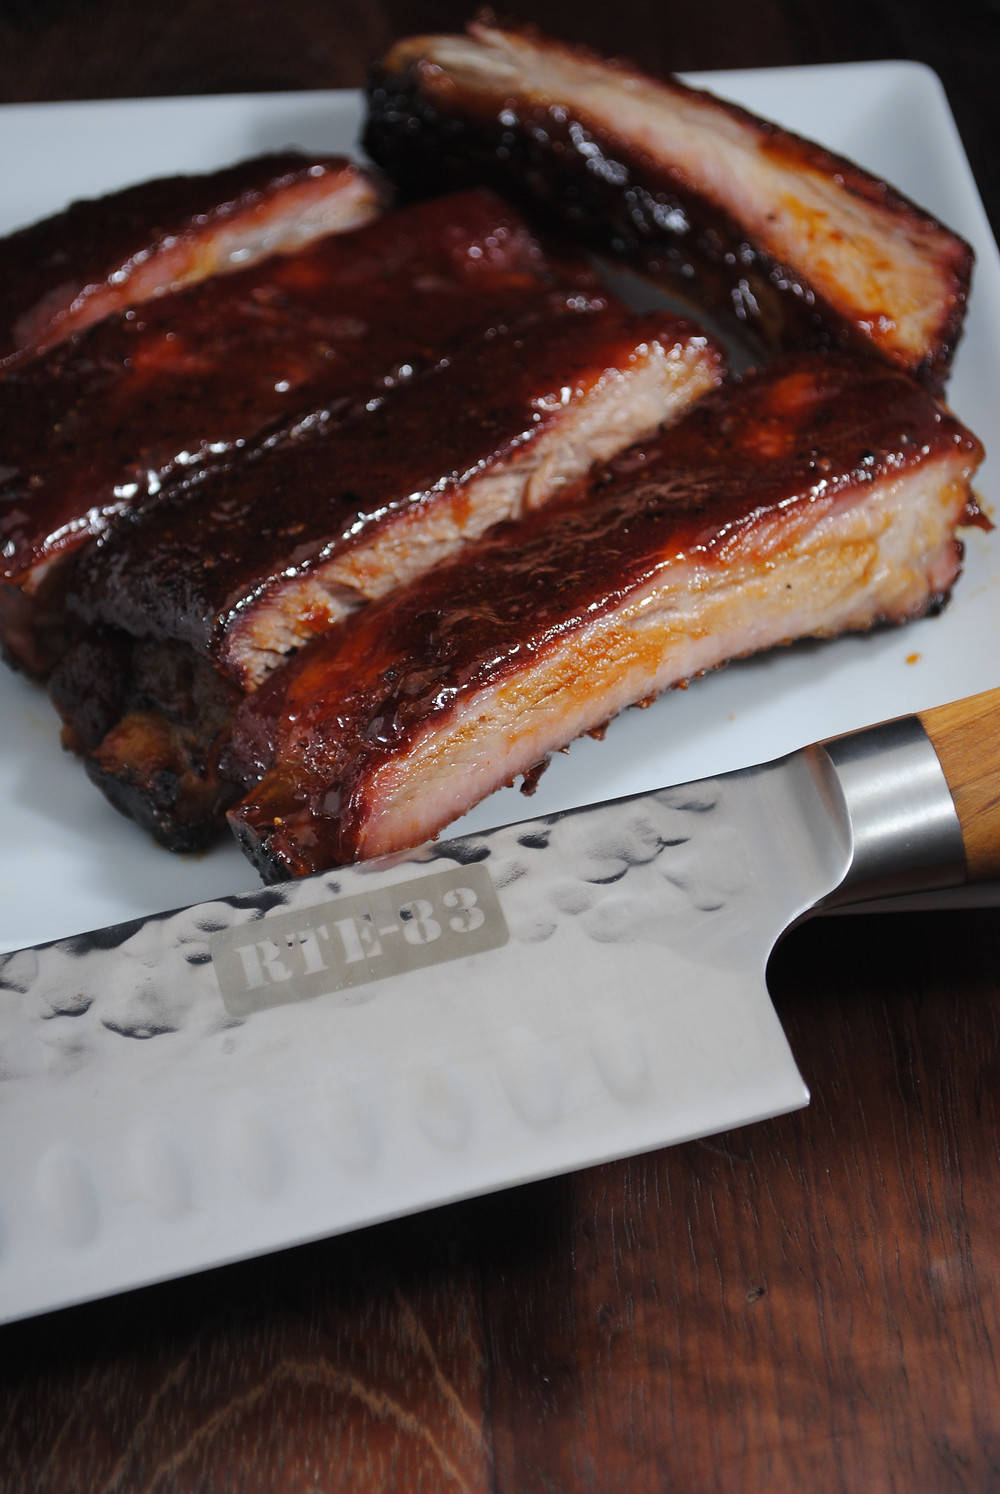 Finished ribs sliced with a Route 83 knife